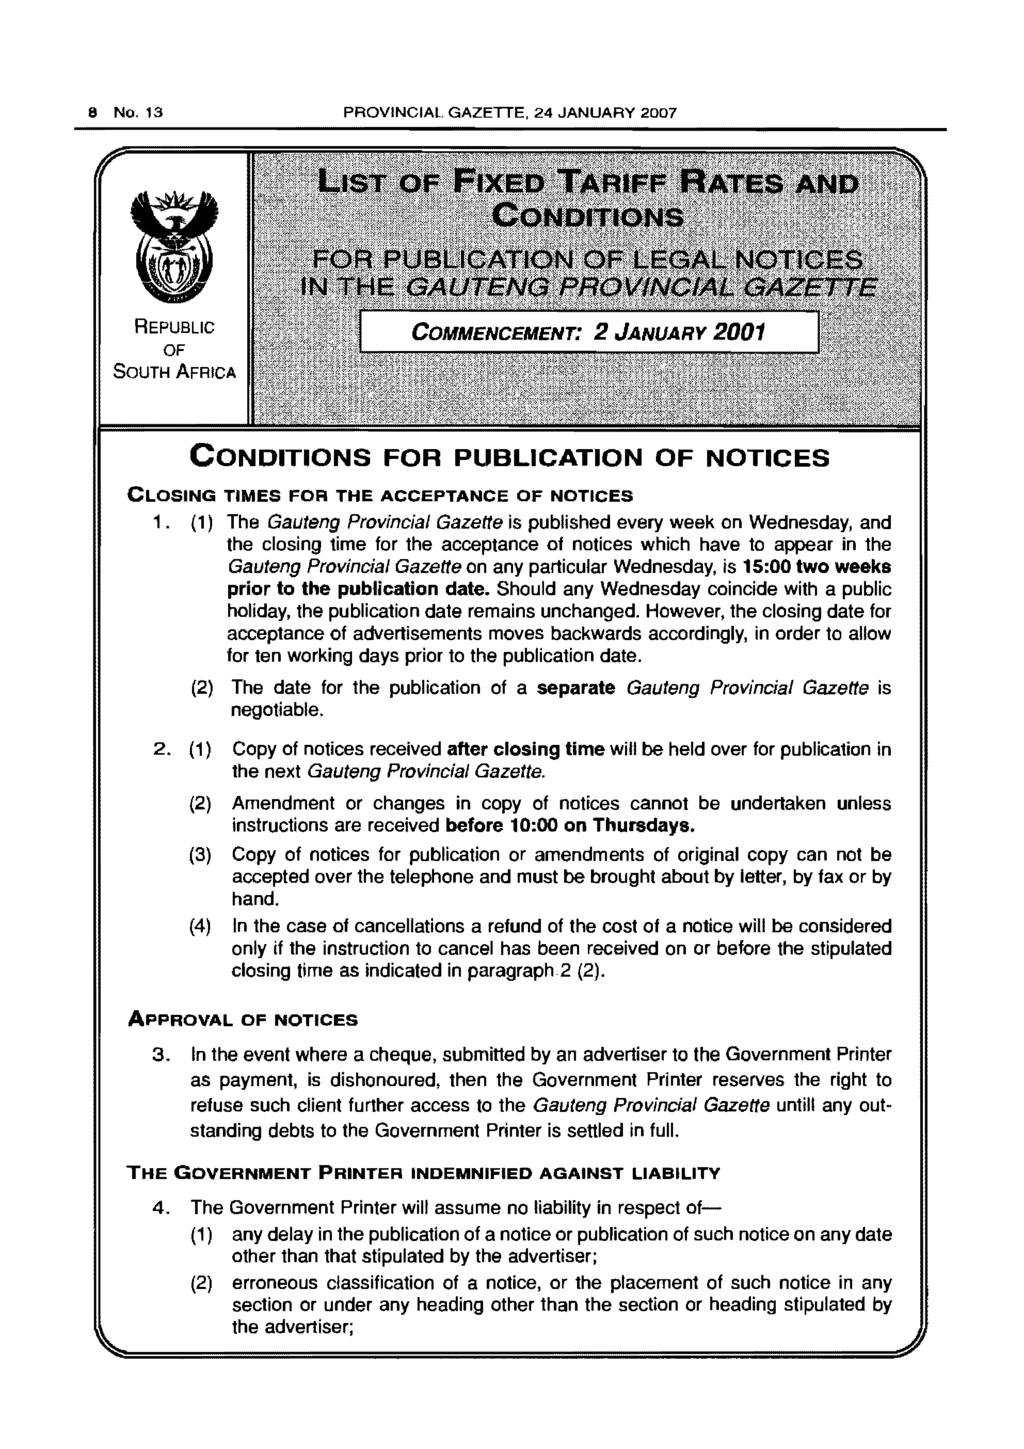 8 No. 13 PROVINCIAL GAZETTE, 24 JANUARY 2007 REPUBLIC OF SOUTH AFRICA CONDITIONS FOR PUBLICATION OF NOTICES CLOSING TIMES FOR THE ACCEPTANCE OF NOTICES 1.